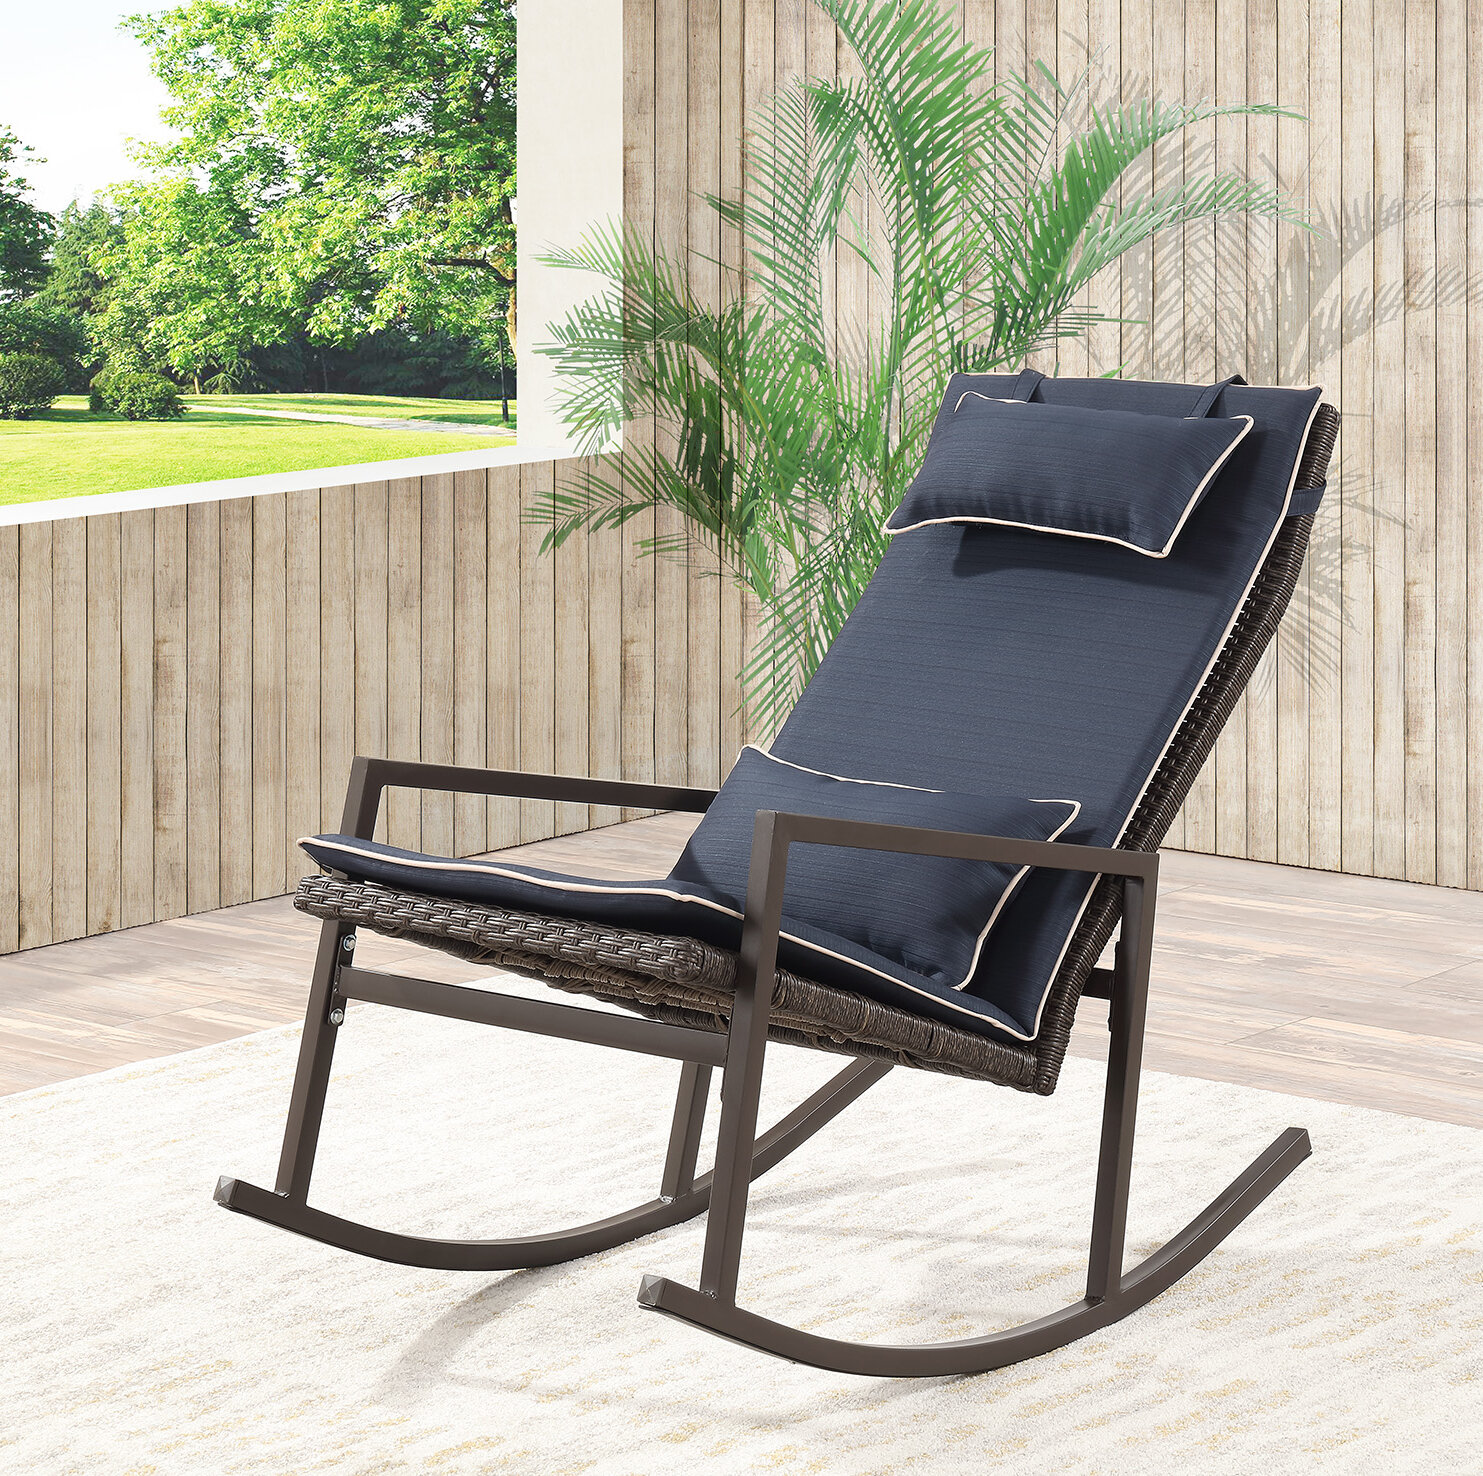 Longs Tides Tremberth Outdoor Rocking Chair With Cushion Reviews Wayfair